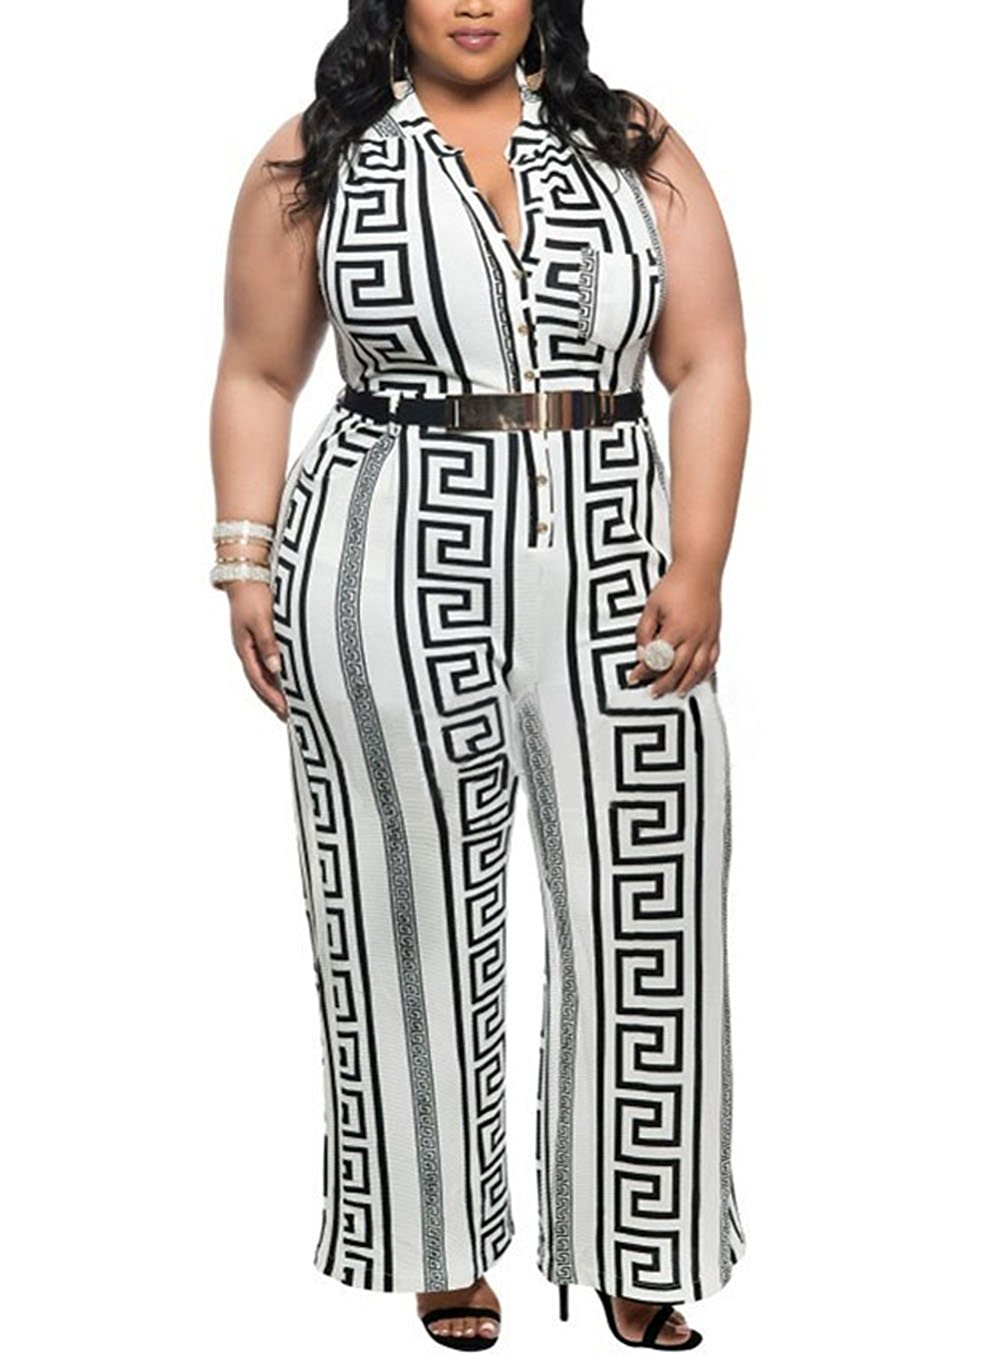 ZOE GARDEN Sexy Plus Size White Print Gold Belted Jumpsuit by